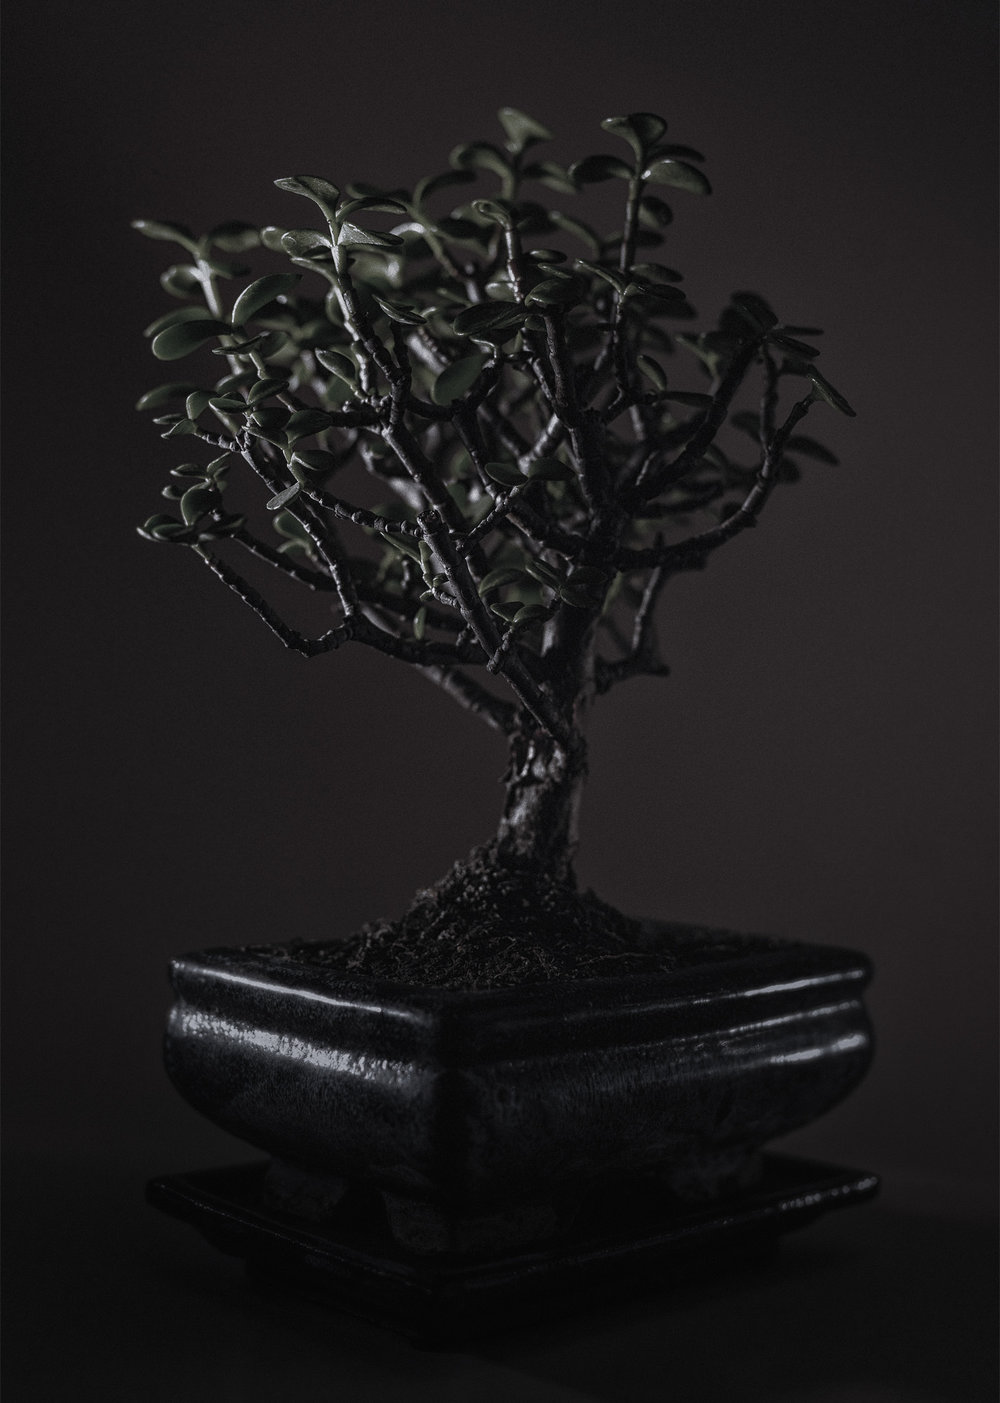 Bonsai at night